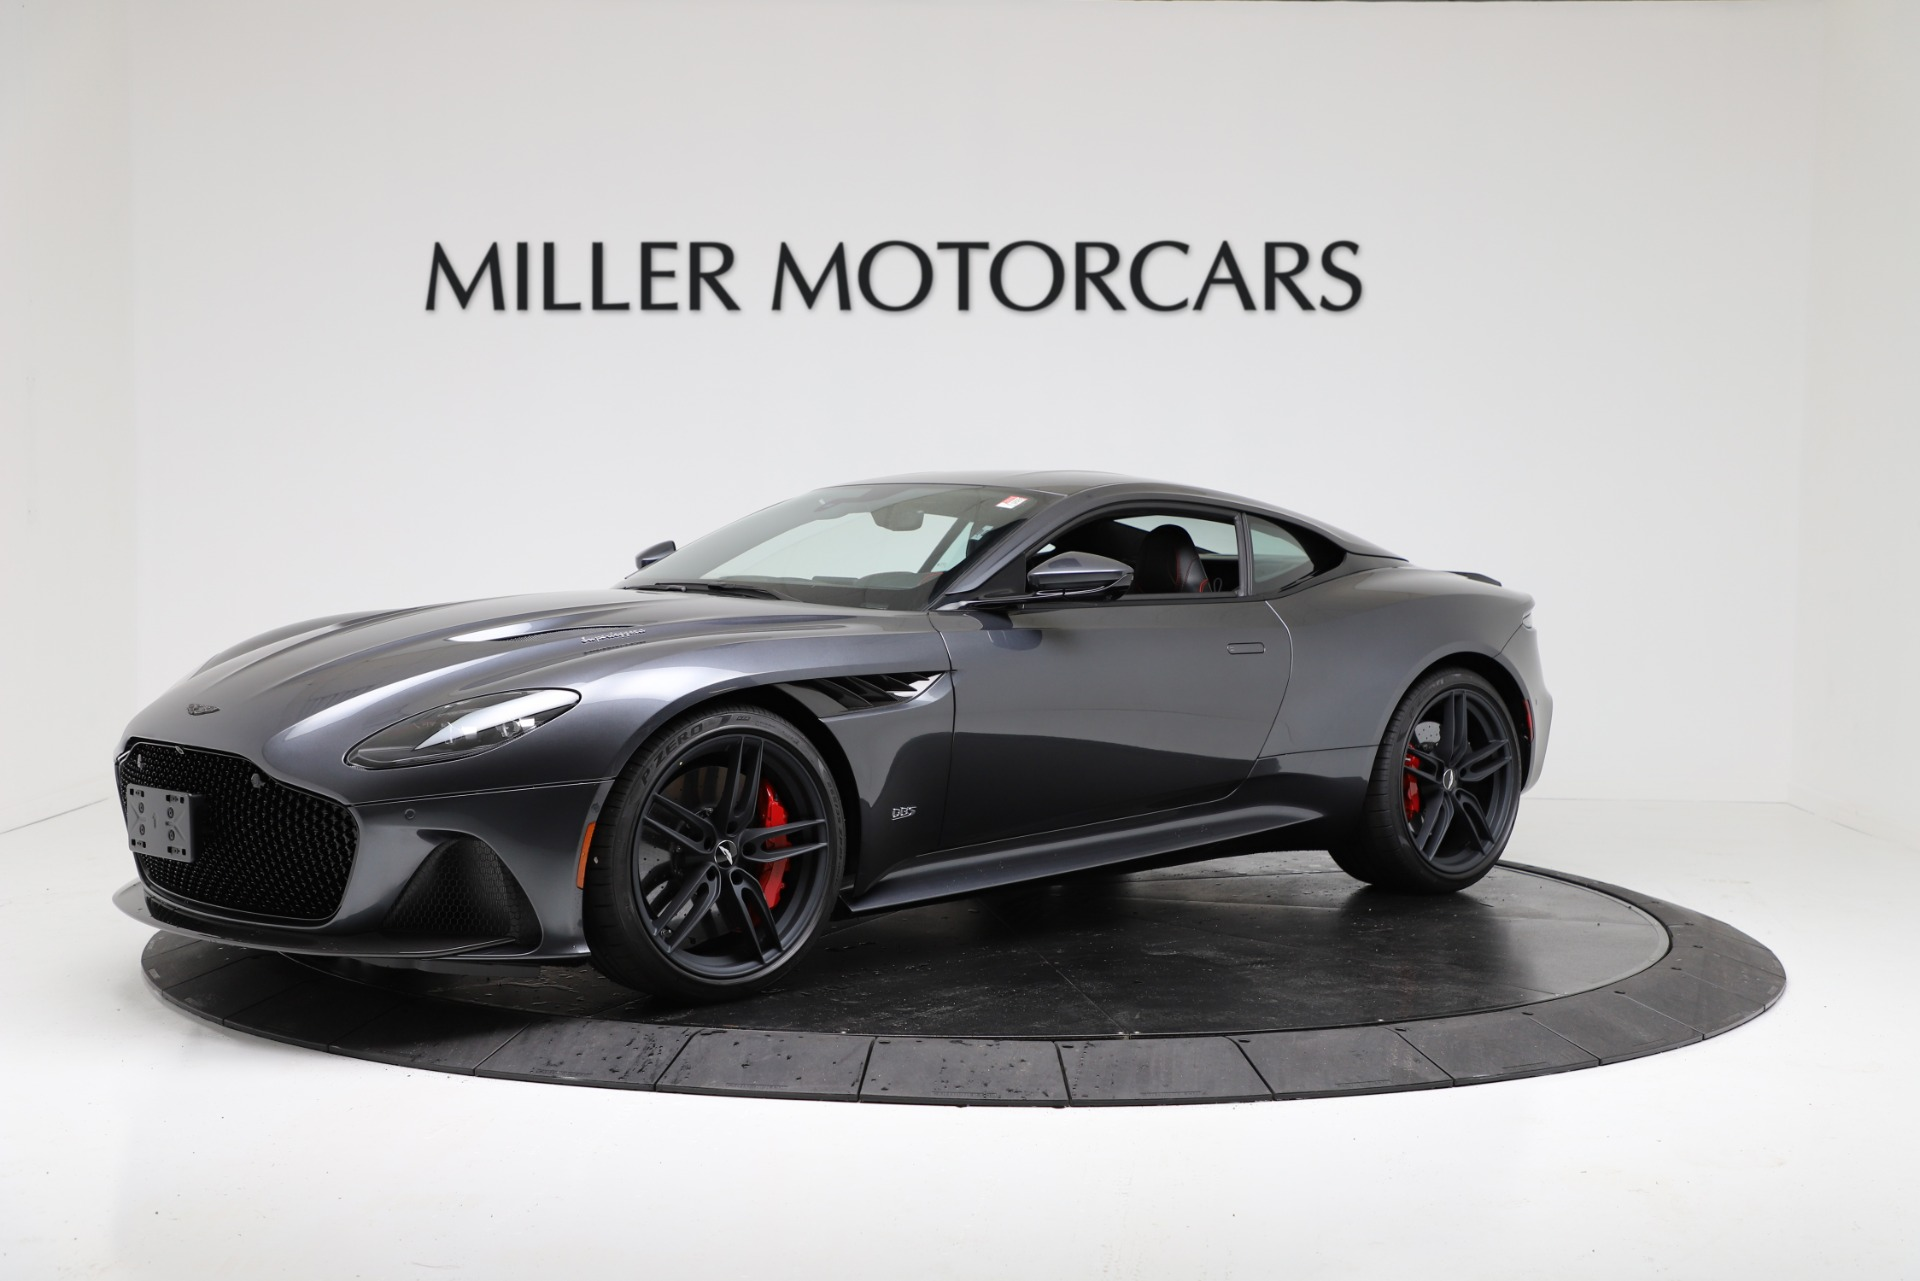 New 2019 Aston Martin DBS Superleggera Coupe for sale Sold at Bentley Greenwich in Greenwich CT 06830 1